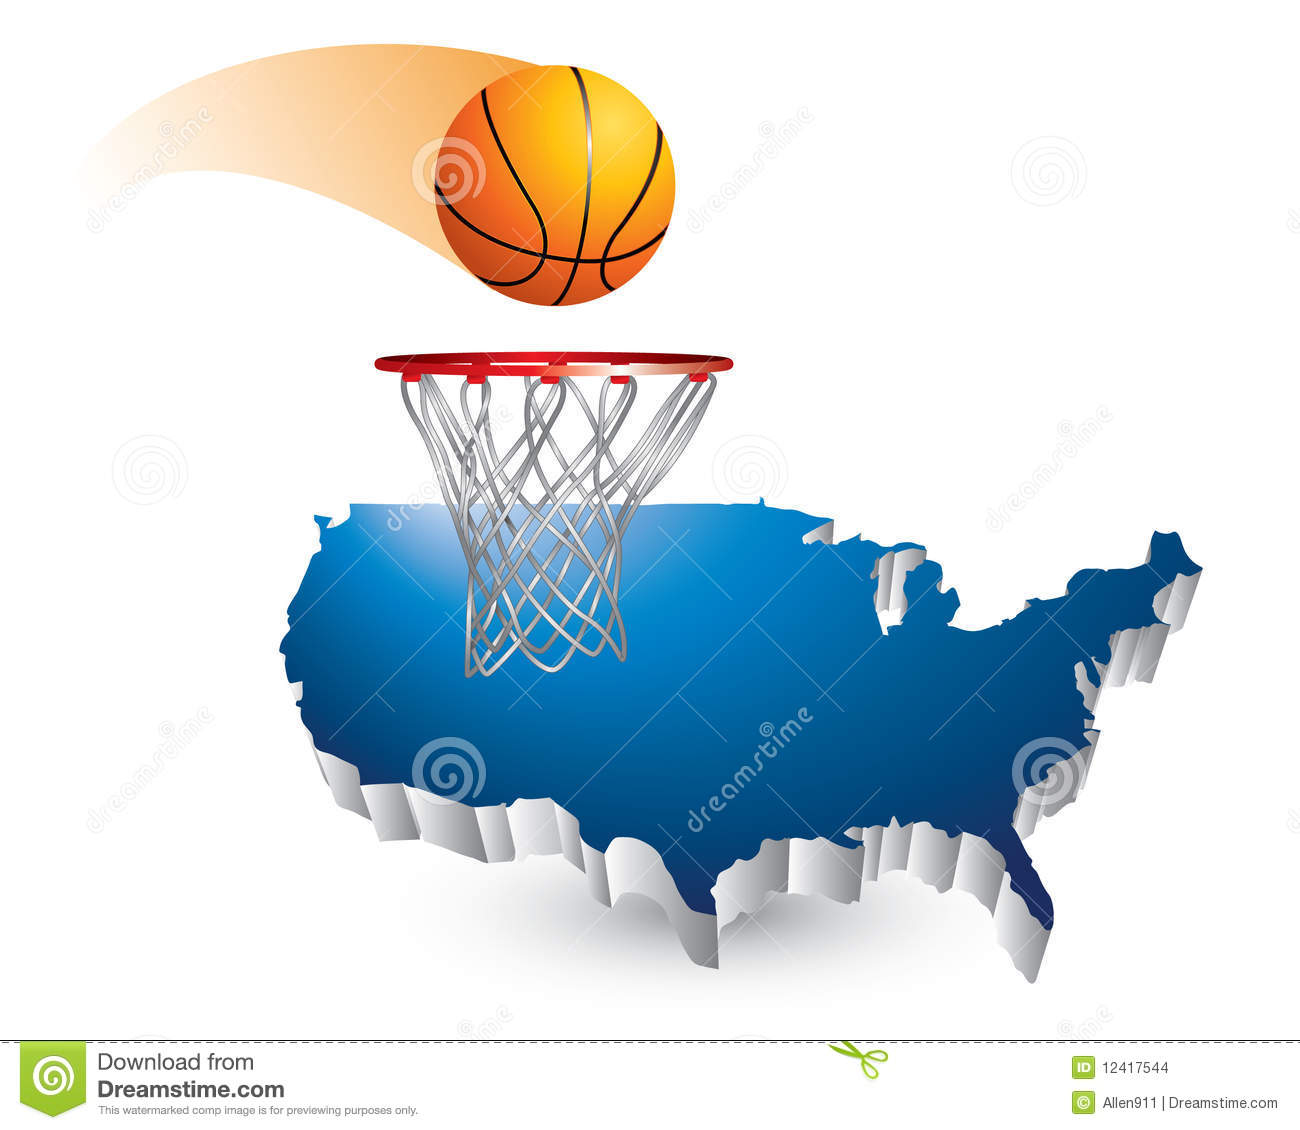 a history of the basketball in the united states Dr james naismith is known world-wide as the inventor of basketball he was born in 1861 in ramsay township, near almonte, ontario, canada the concept of basketball was born from naismith's school days in the area where he played a simple child's game known as duck-on-a-rock outside his one-room schoolhouse.